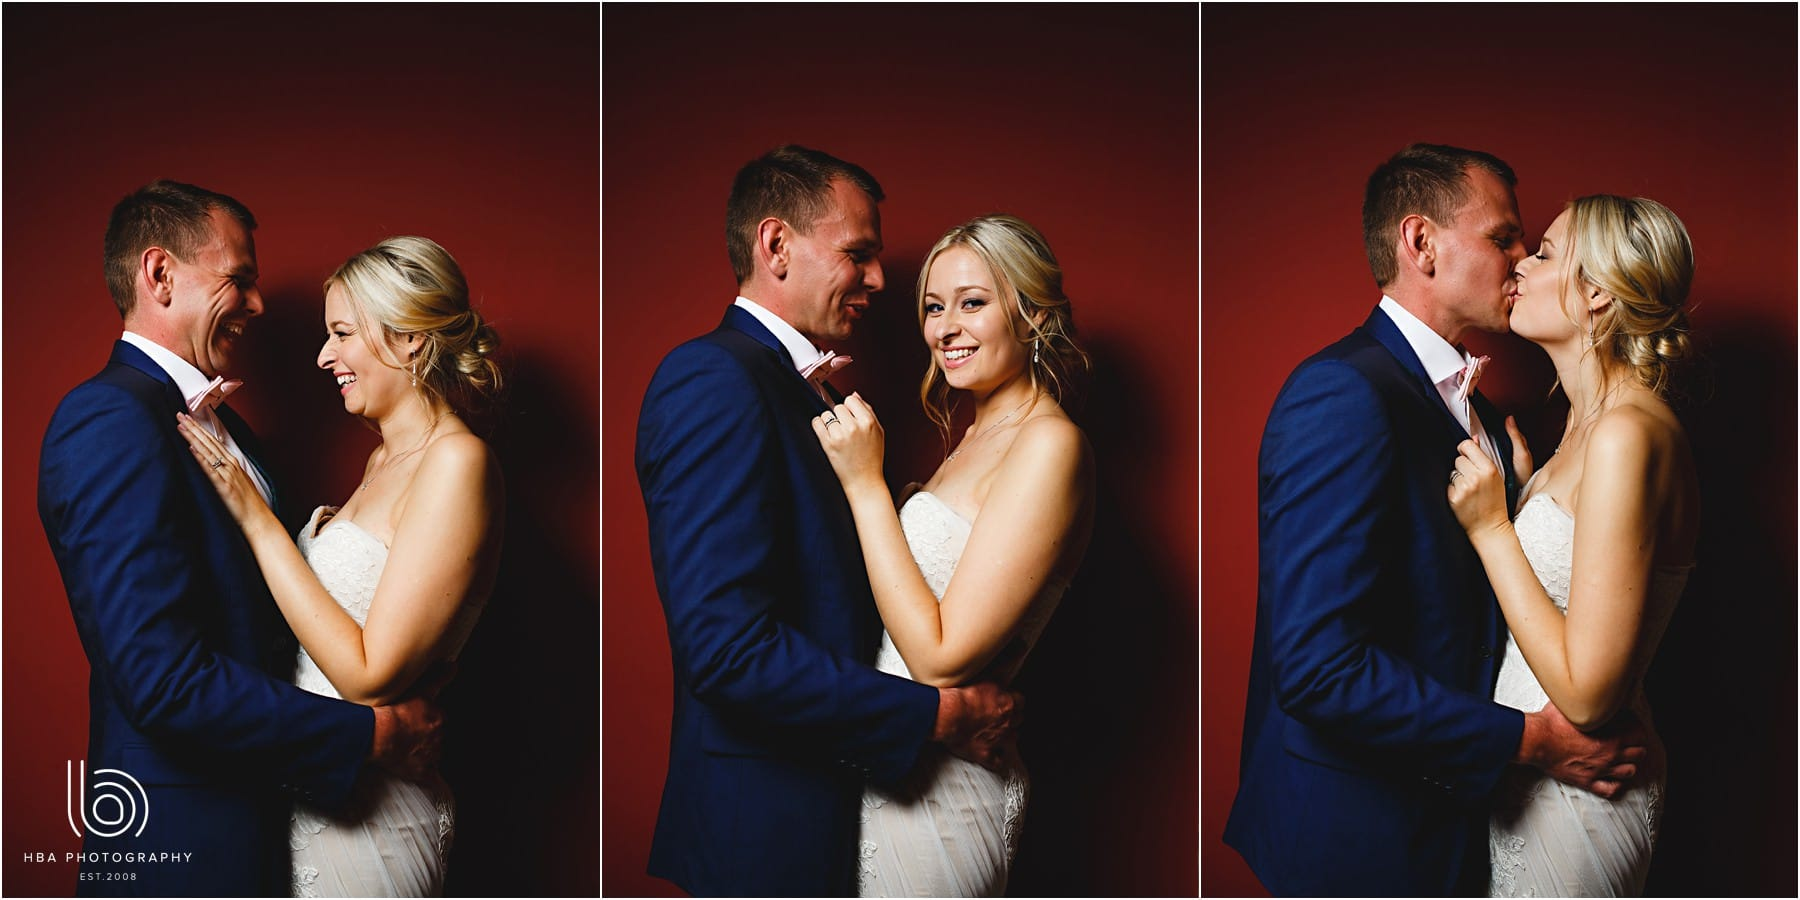 the bride & groom by a red wall